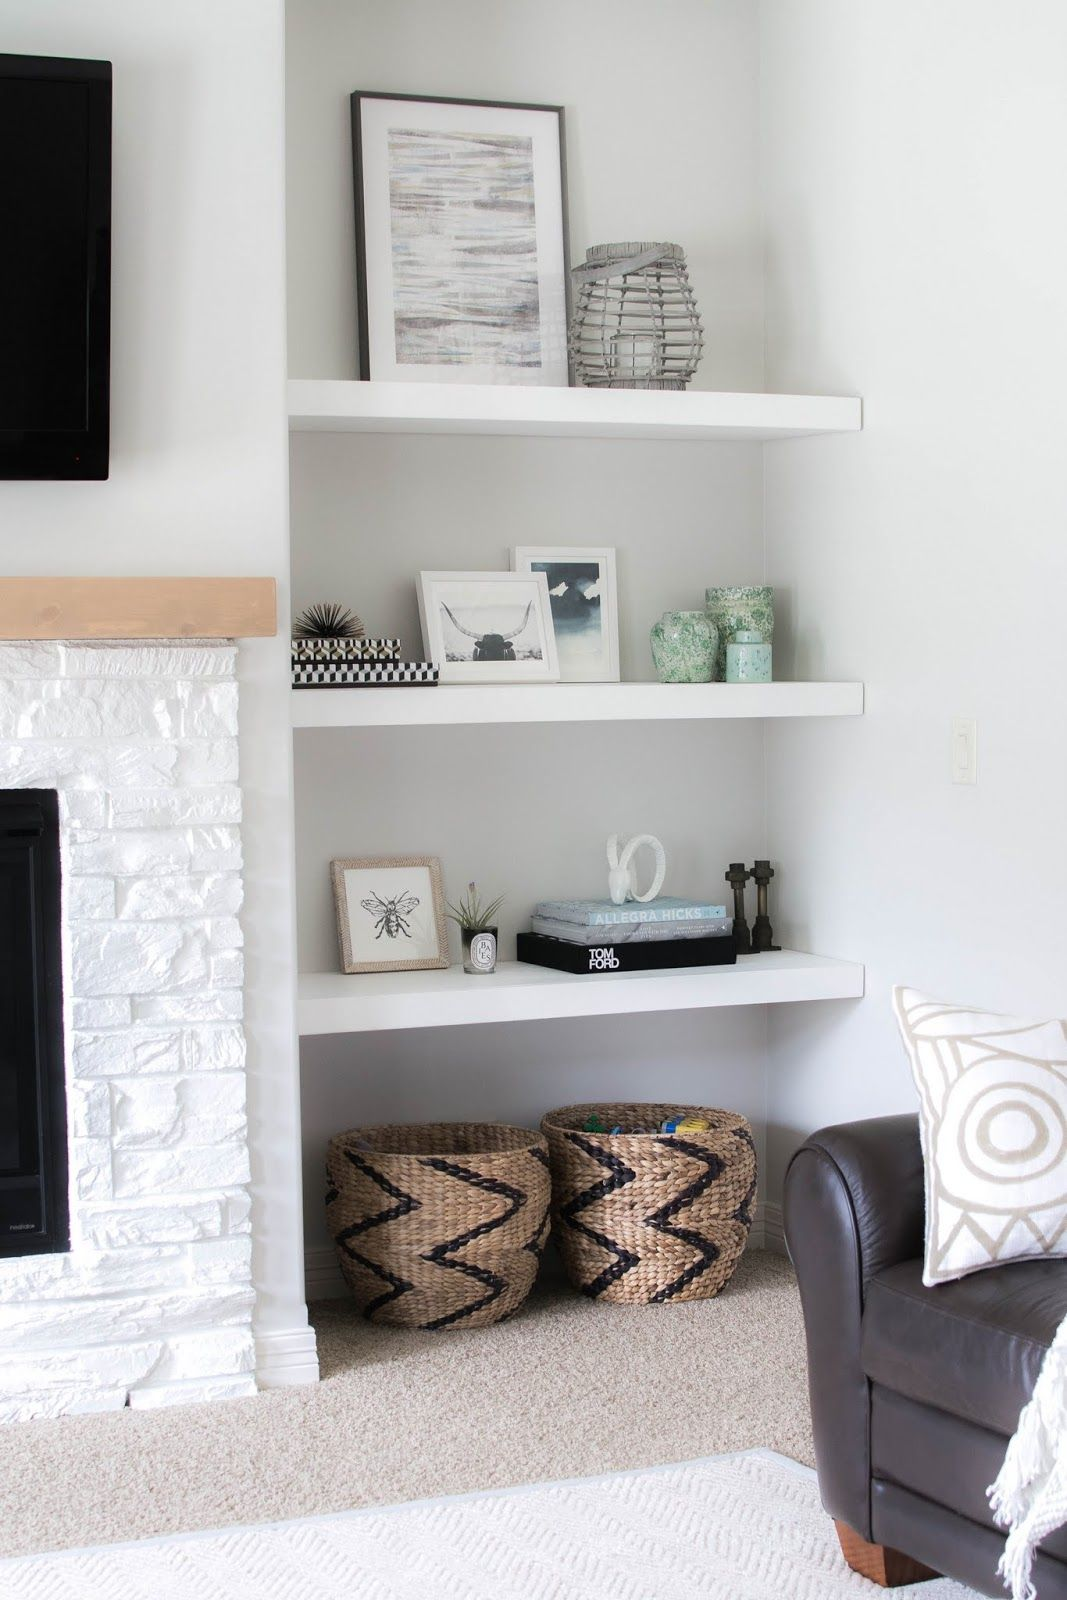 styling our new floating shelves gorgeous fireplace and built shelf leaning forward makeover mandy such brown faux leather rustic corner unit closet between studs brackets office